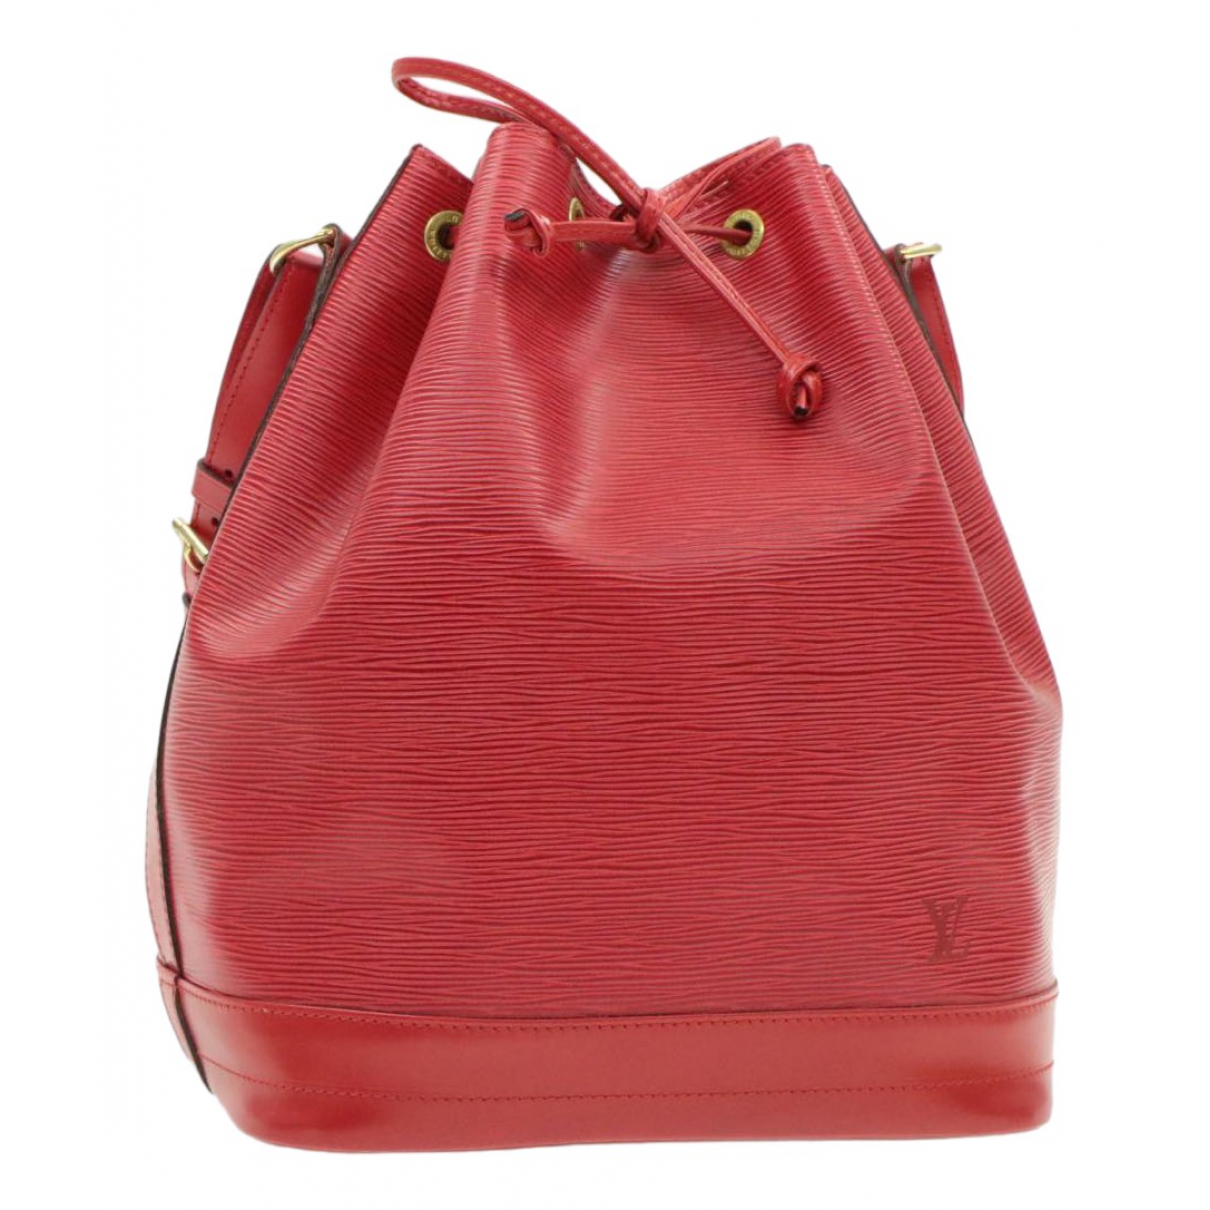 Louis Vuitton Noé Red Leather handbag for Women N